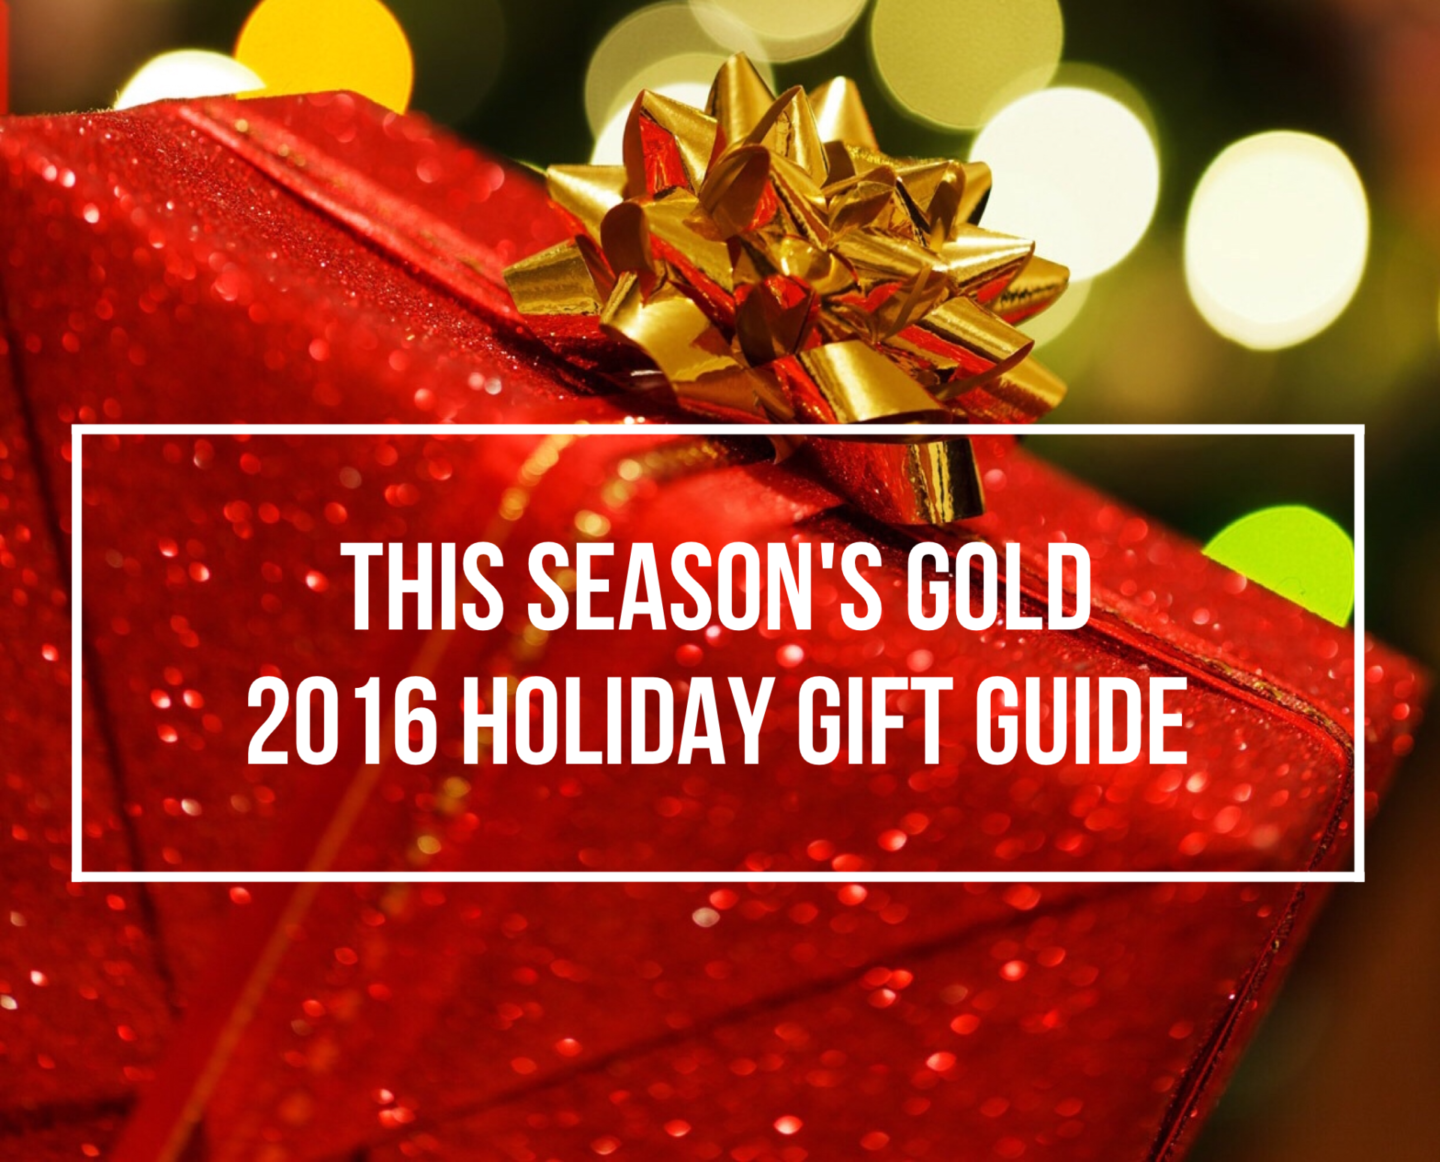 2016 Holiday Season Gift Guide